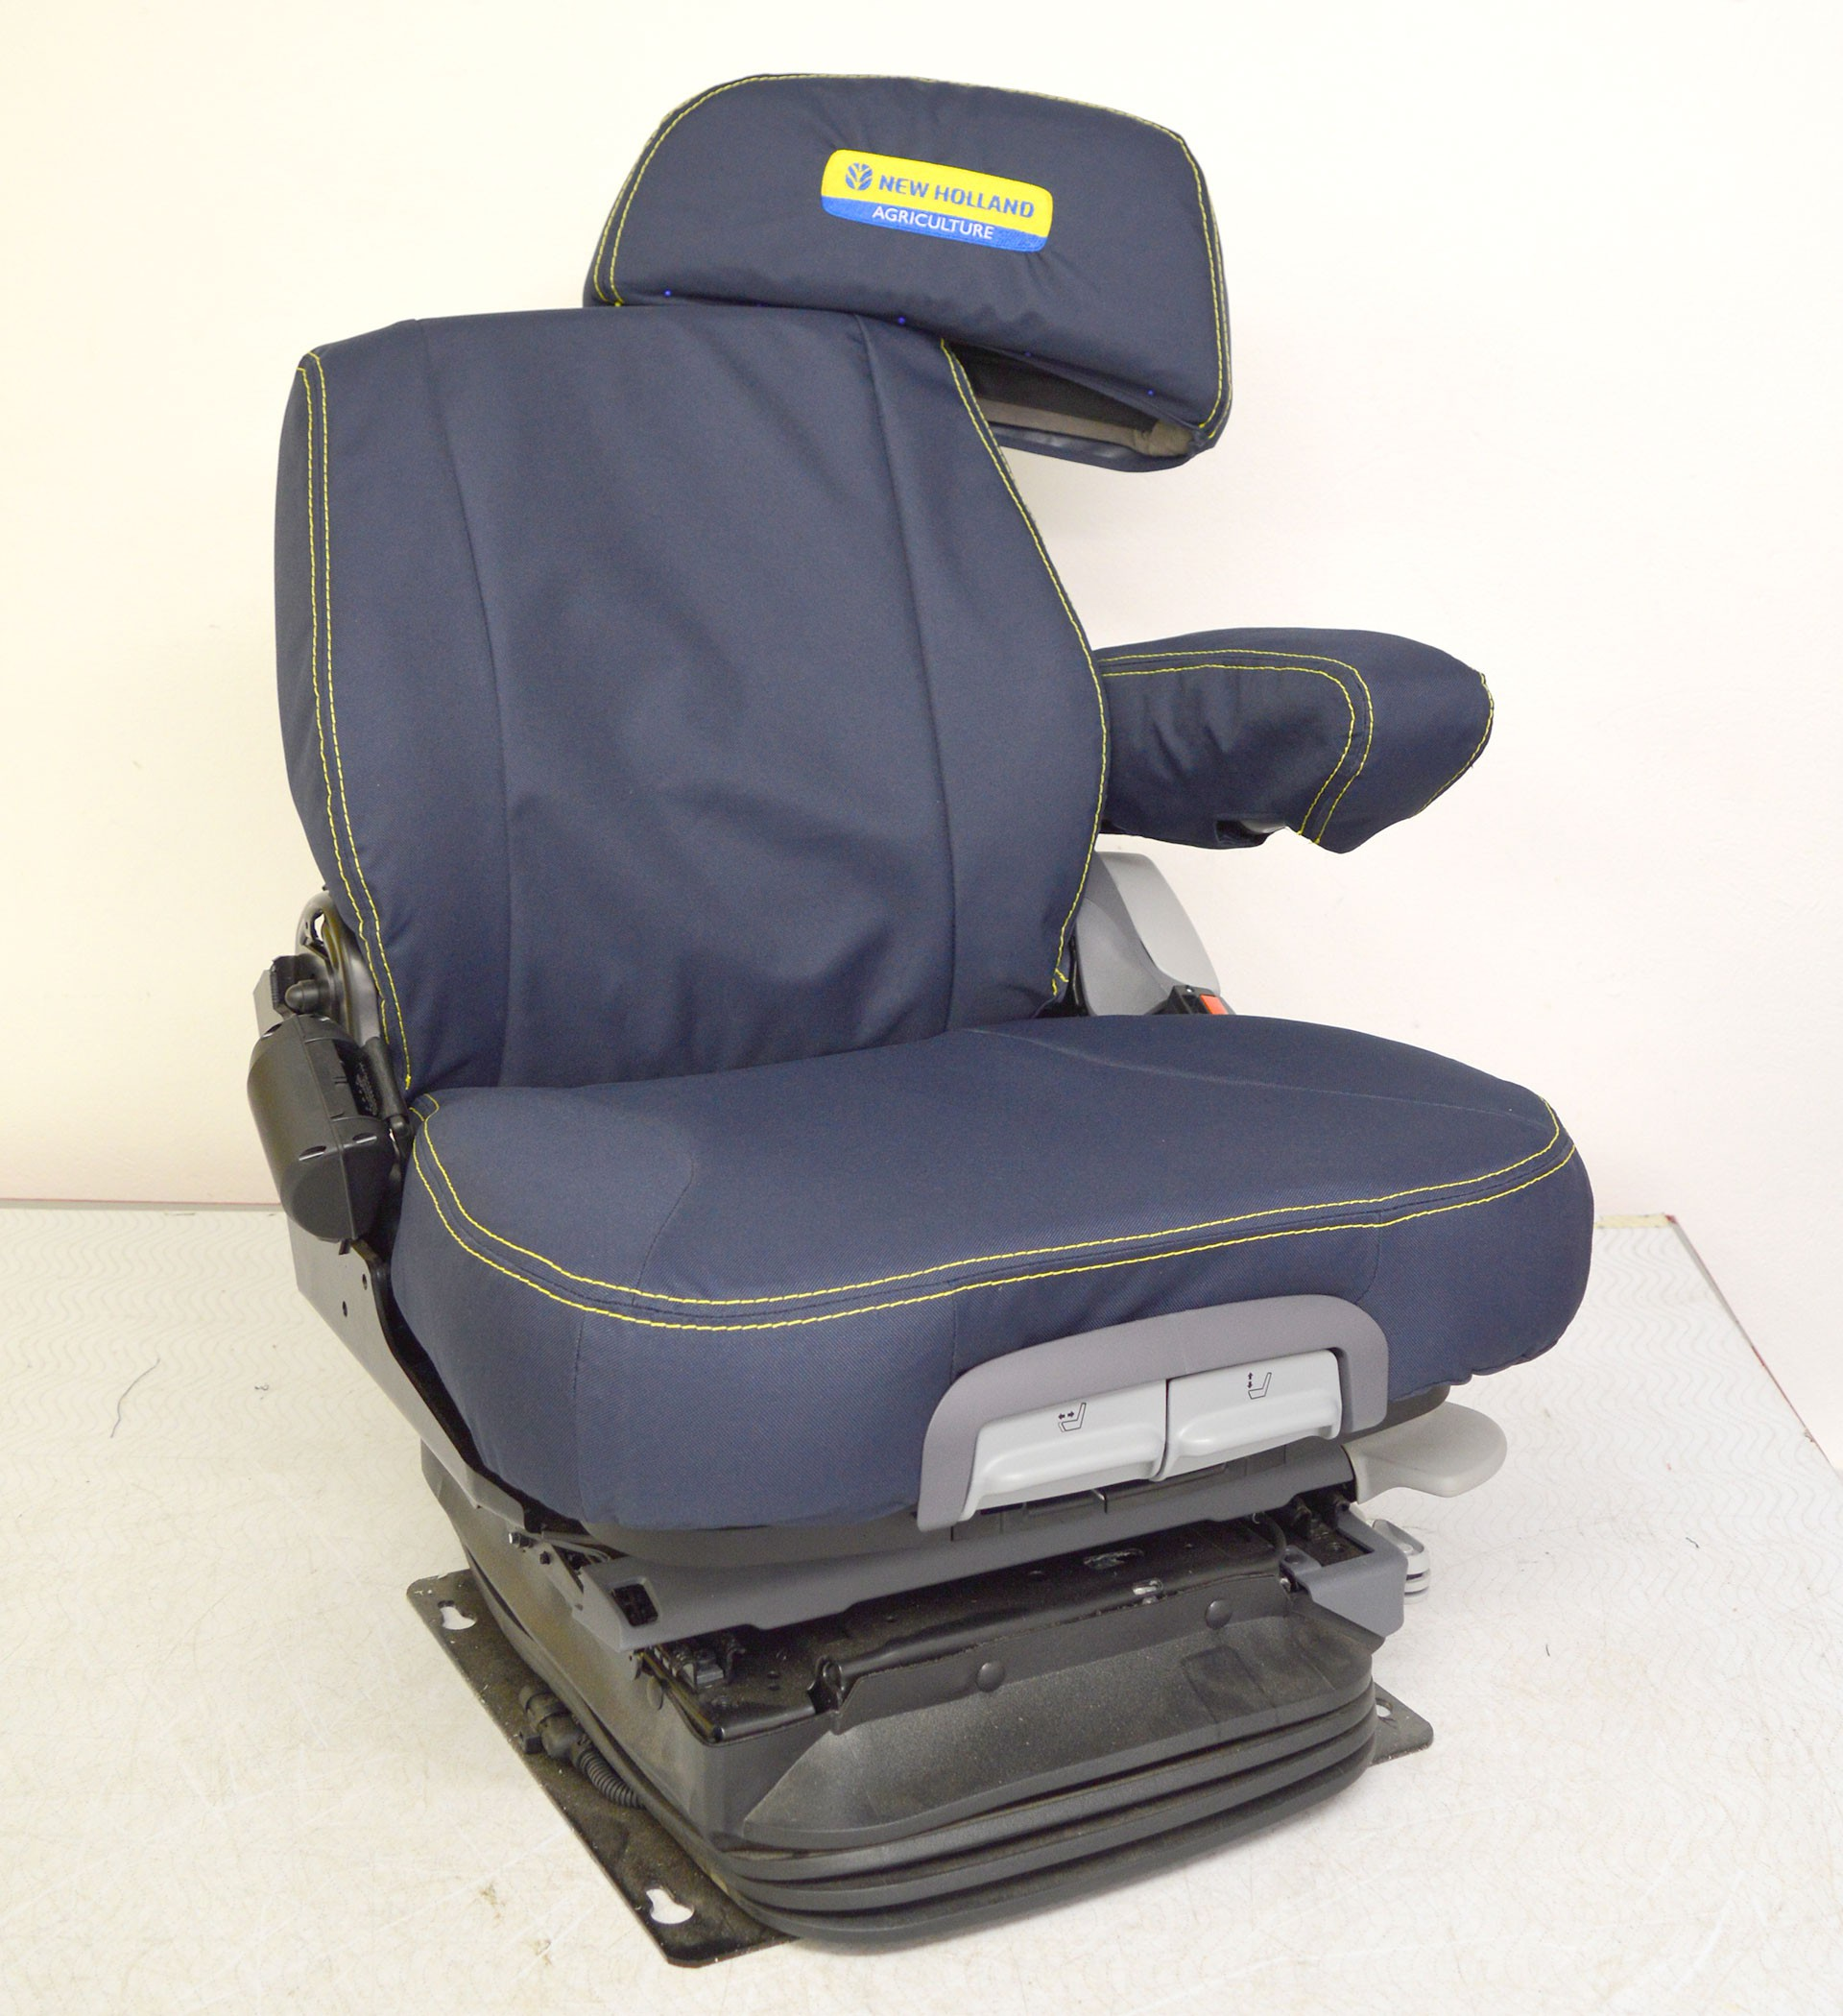 New Holland Grammer Maximo Dynamic Plus Tailored Seat Covers